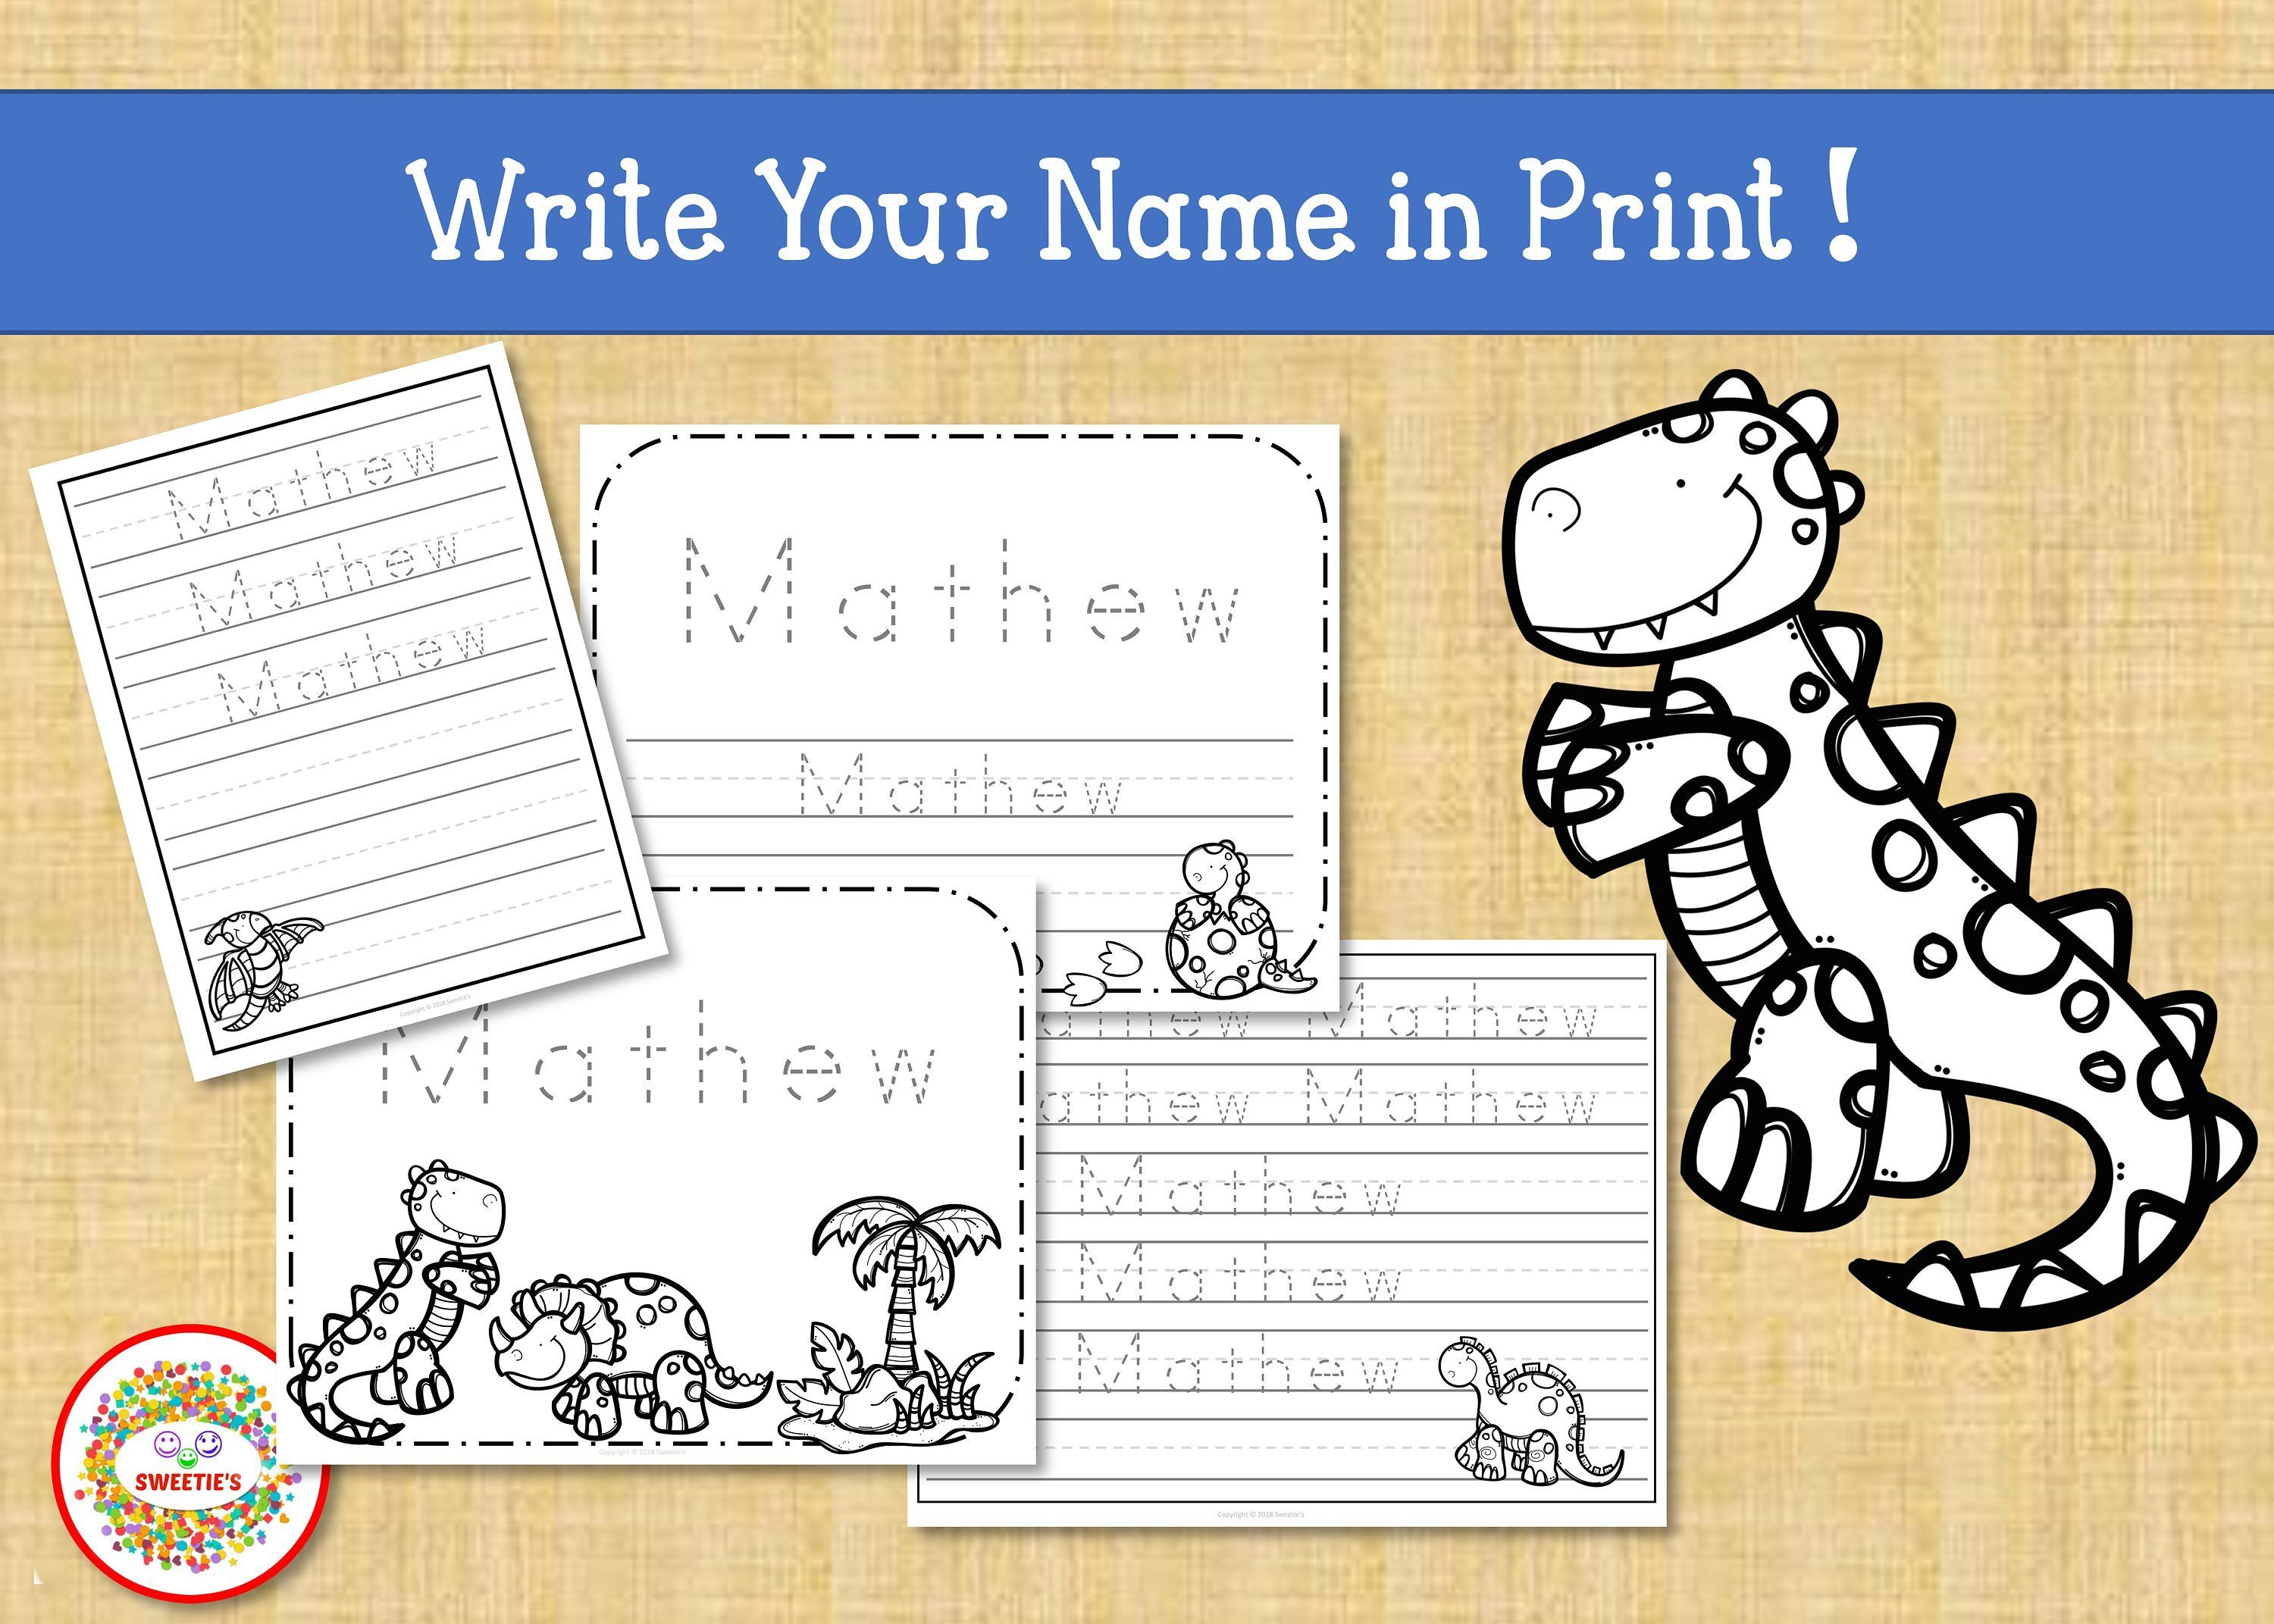 Name Tracing Worksheet First Grade Letter Writing Paper   Etsy   Handwriting  worksheets [ 2143 x 3000 Pixel ]